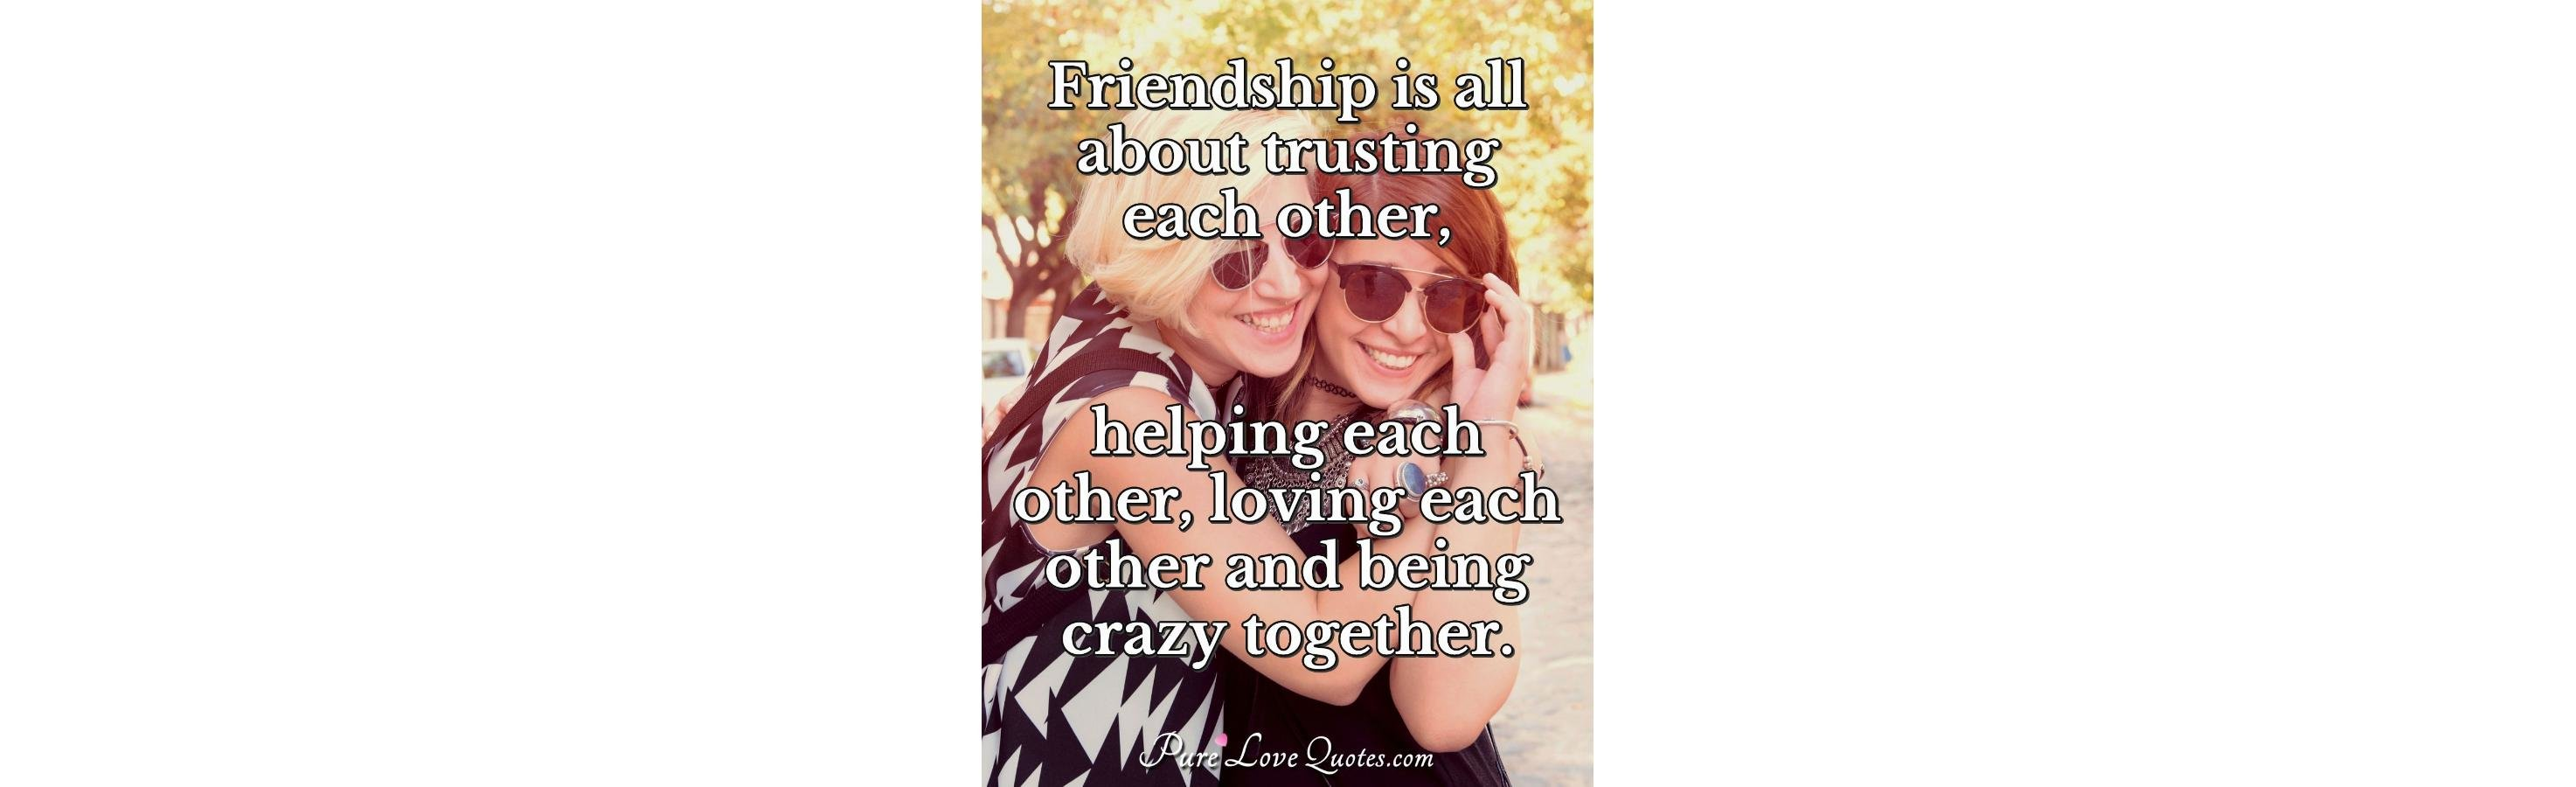 Friendship Is All About Trusting Each Other Helping Each Other